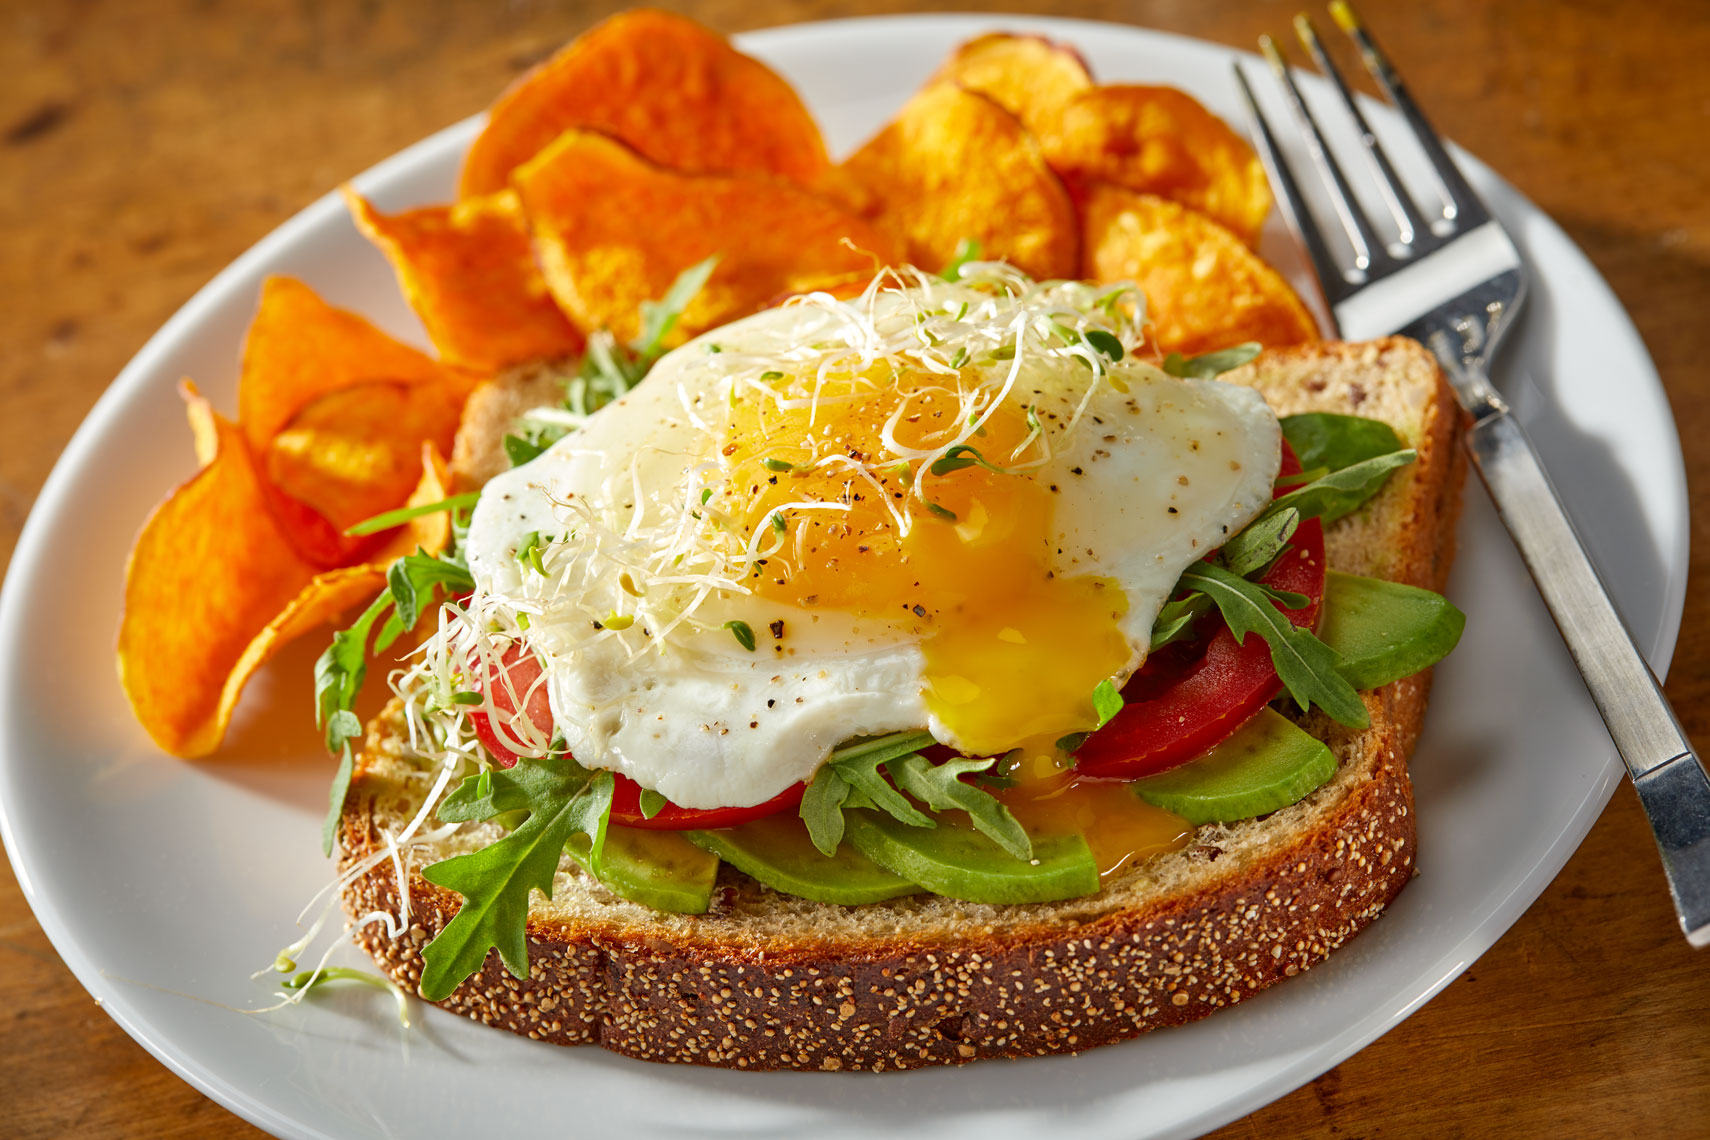 Fried egg sandwich/open facedavocado/food photography